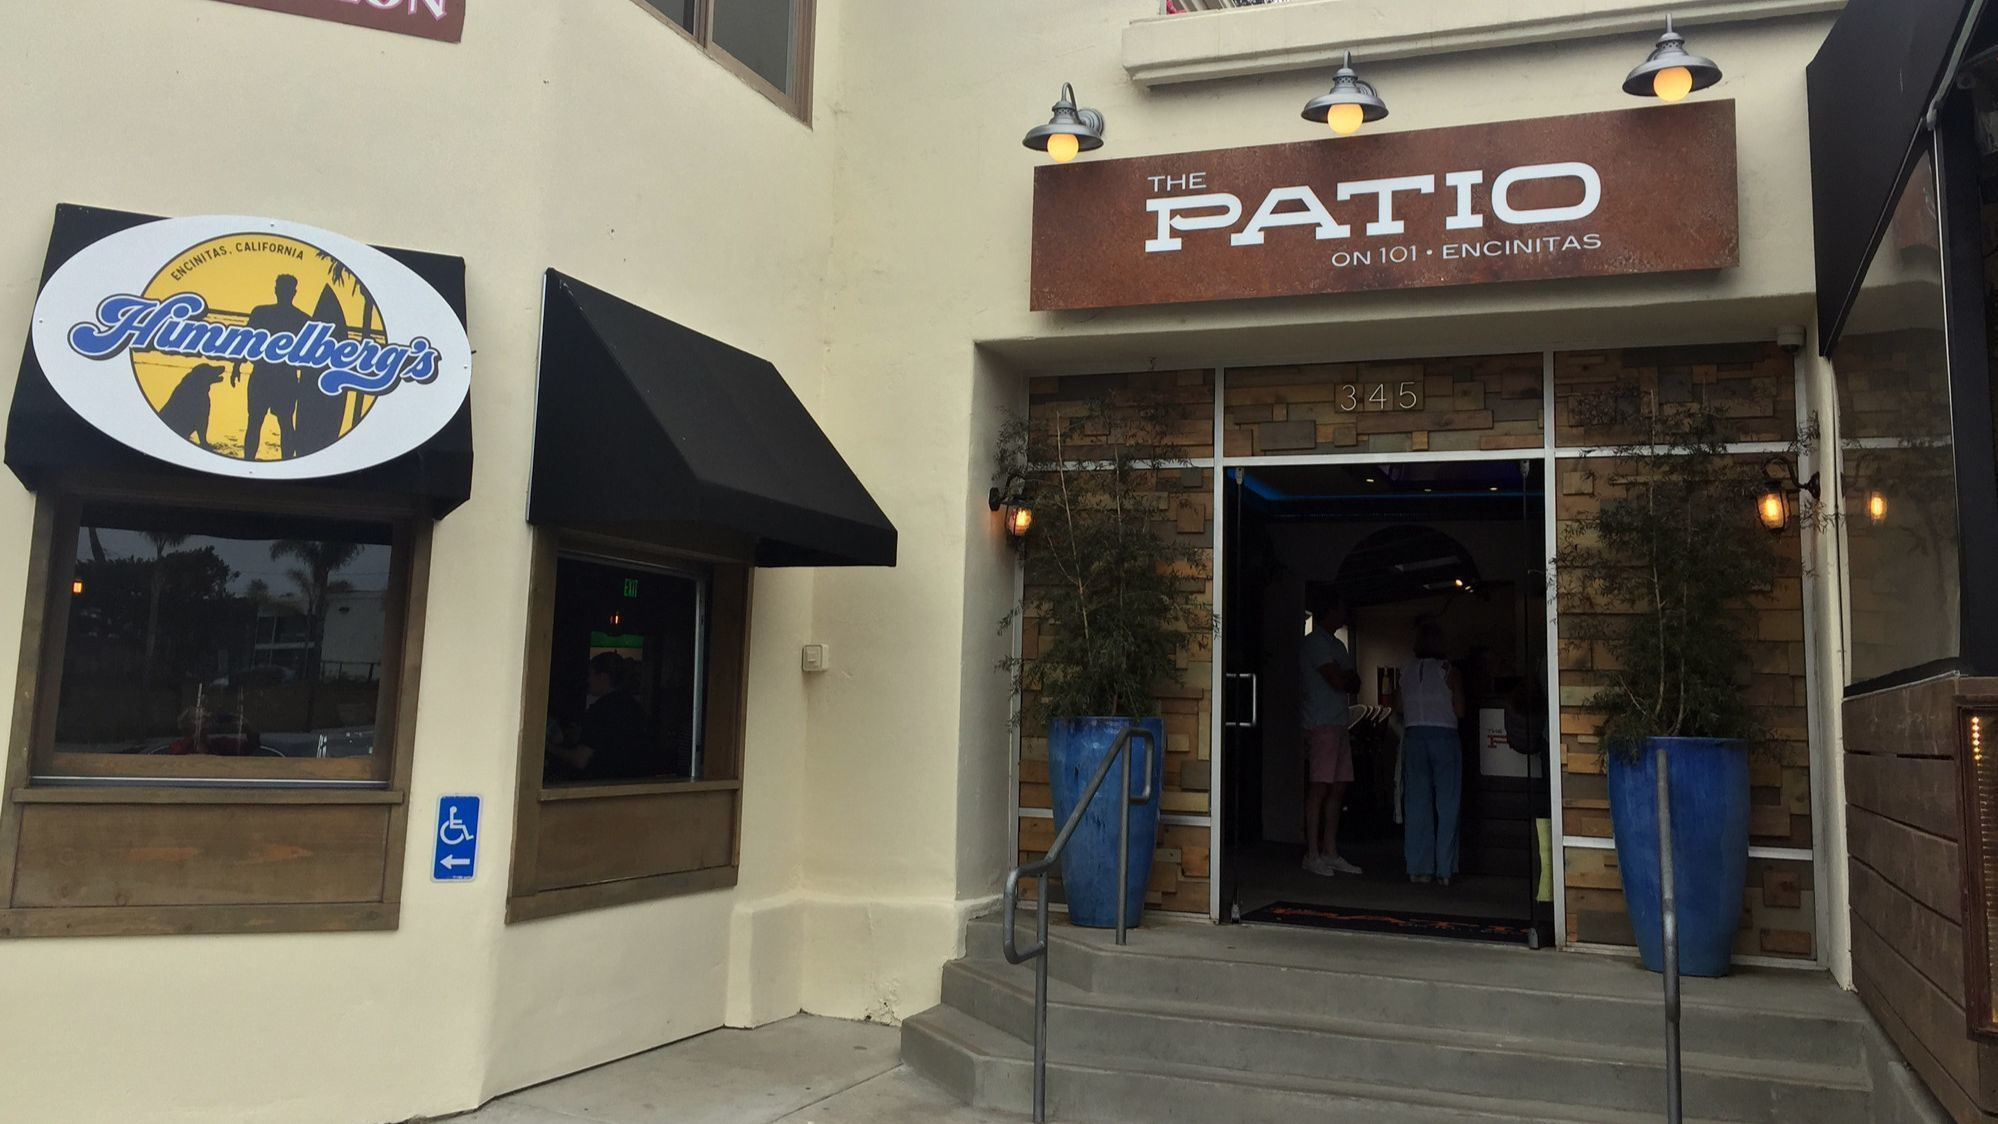 Shuttered Encinitas Eatery Reborn As Patio On 101   The San Diego  Union Tribune